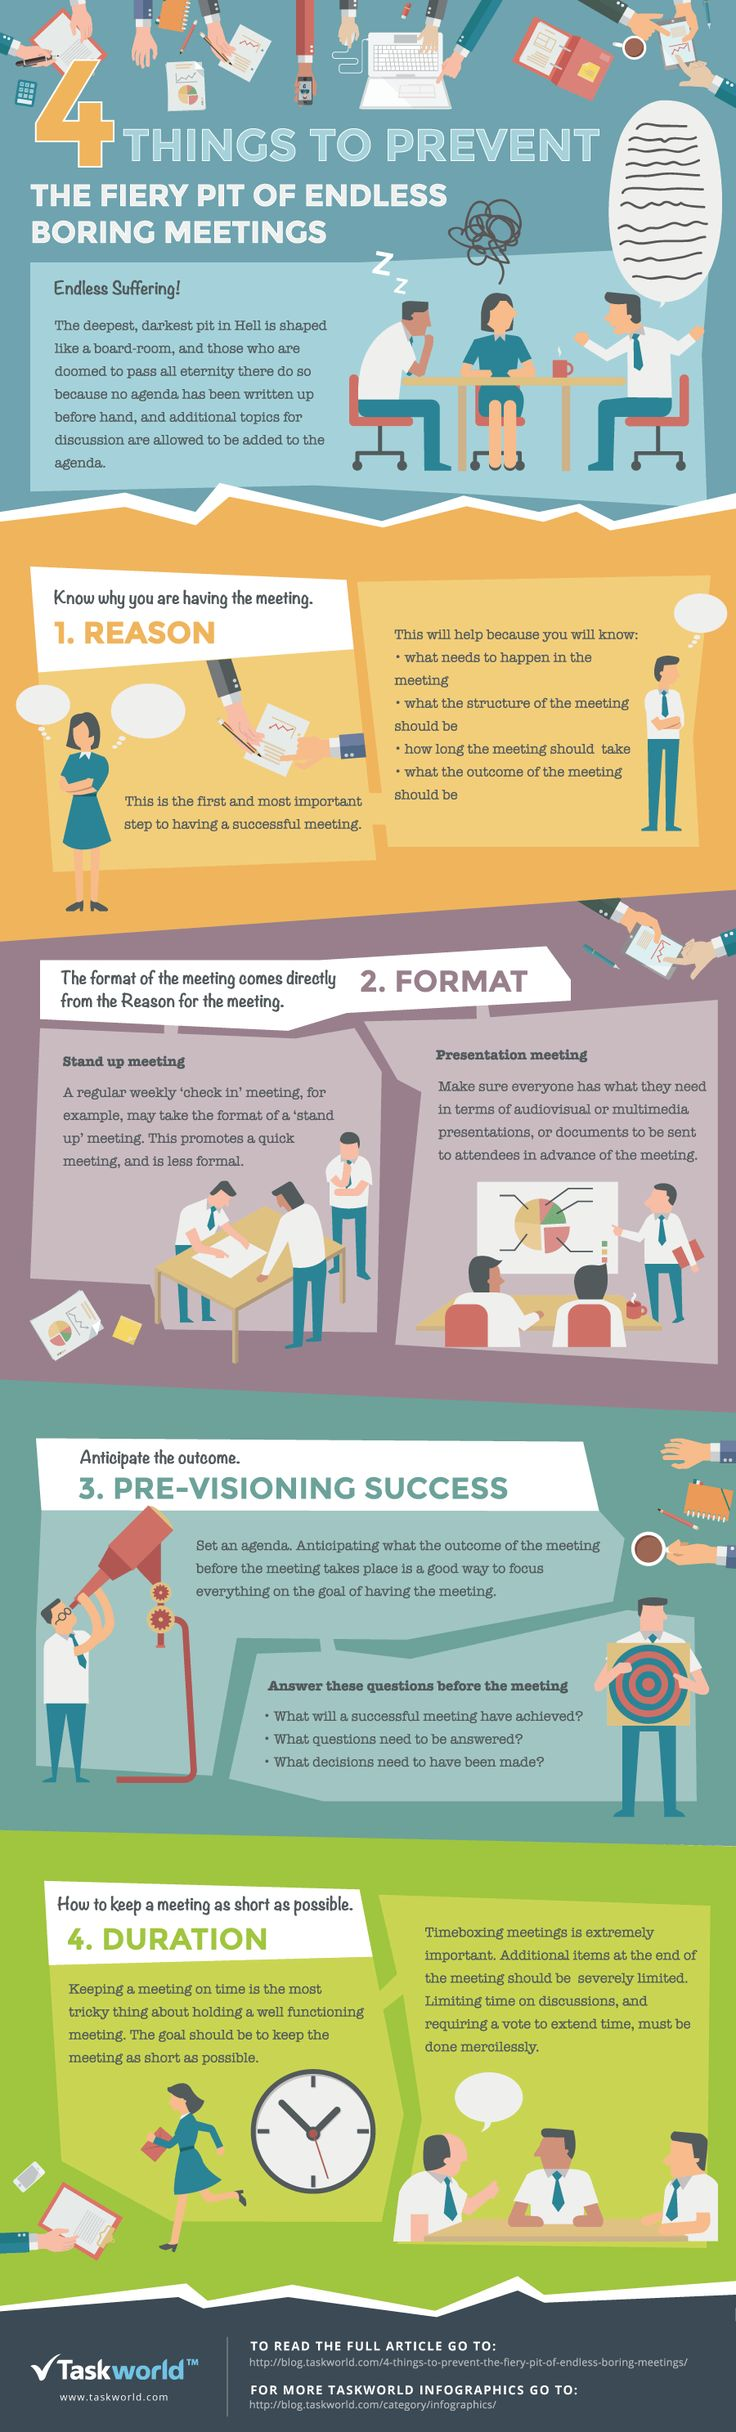 4 Things To Prevent The Fiery Pit of Endless Boring Meetings #infographic #Meetings #Business #Productivity